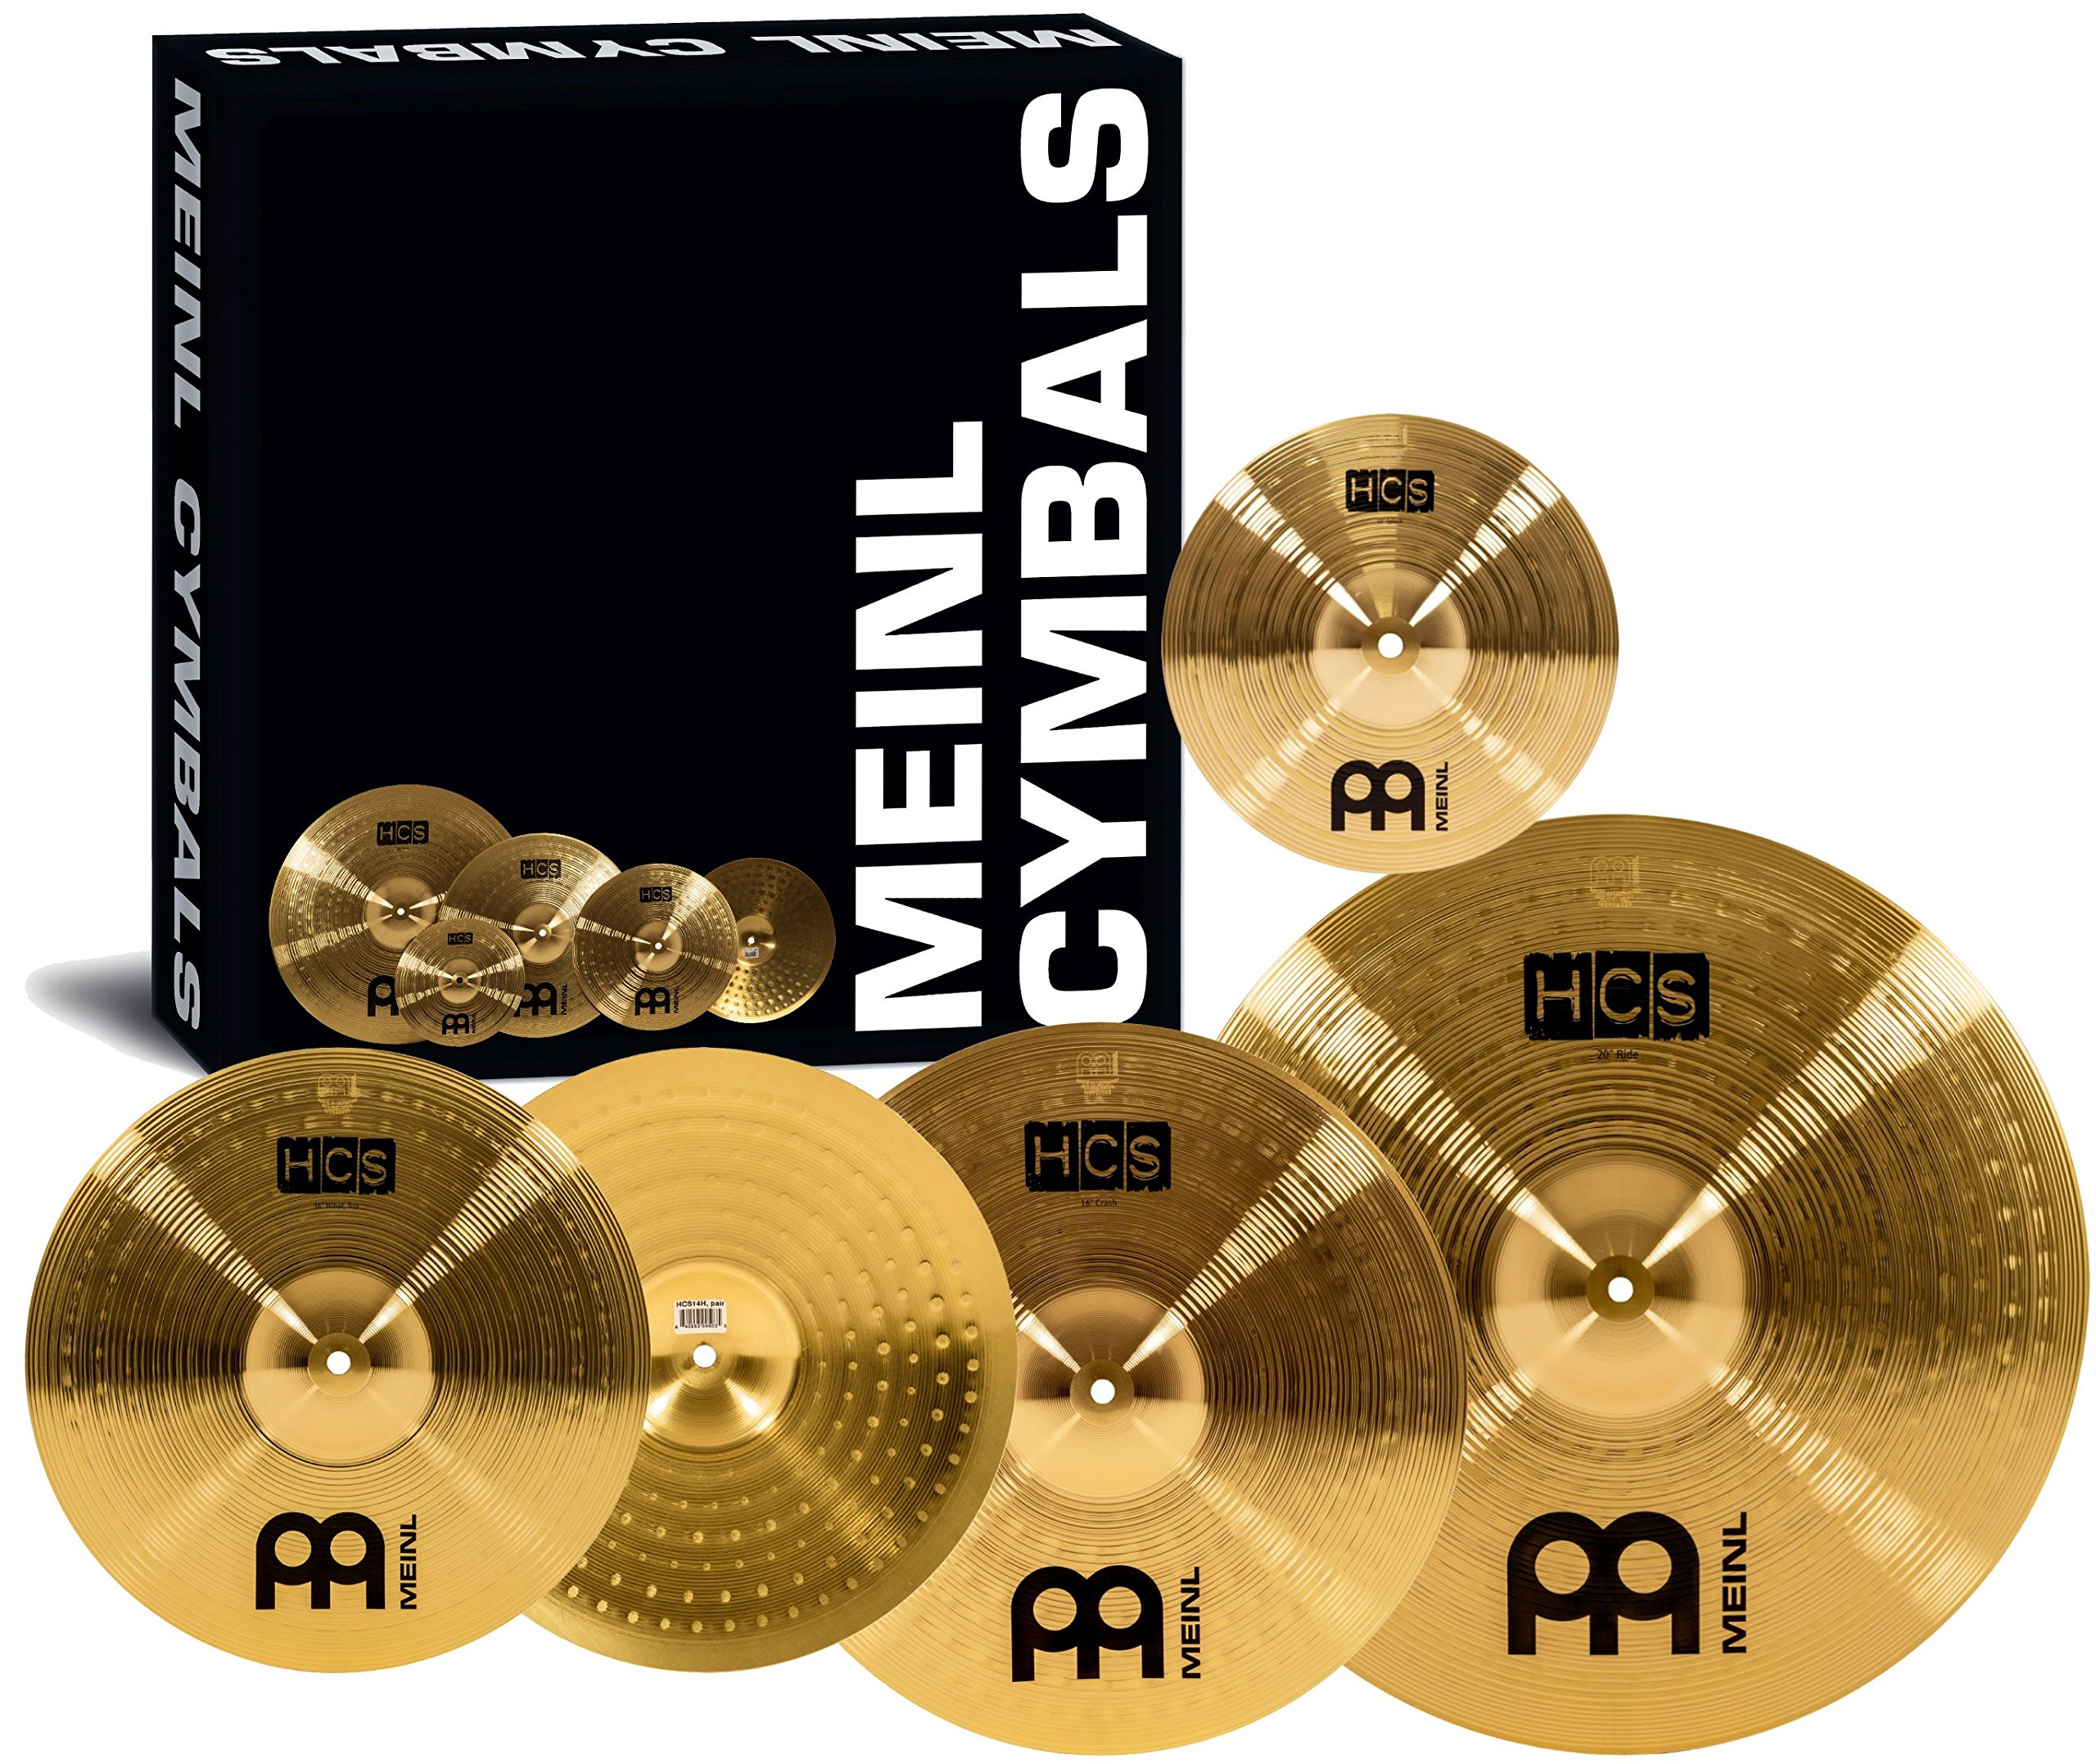 Meinl Cymbals HCS141620+10 HCS Pack Cymbal Box Set with 14'' Hi-Hat Pair, 16'' Crash, 20'' Ride, Plus a FREE 10'' Splash (VIDEO) by Meinl Cymbals